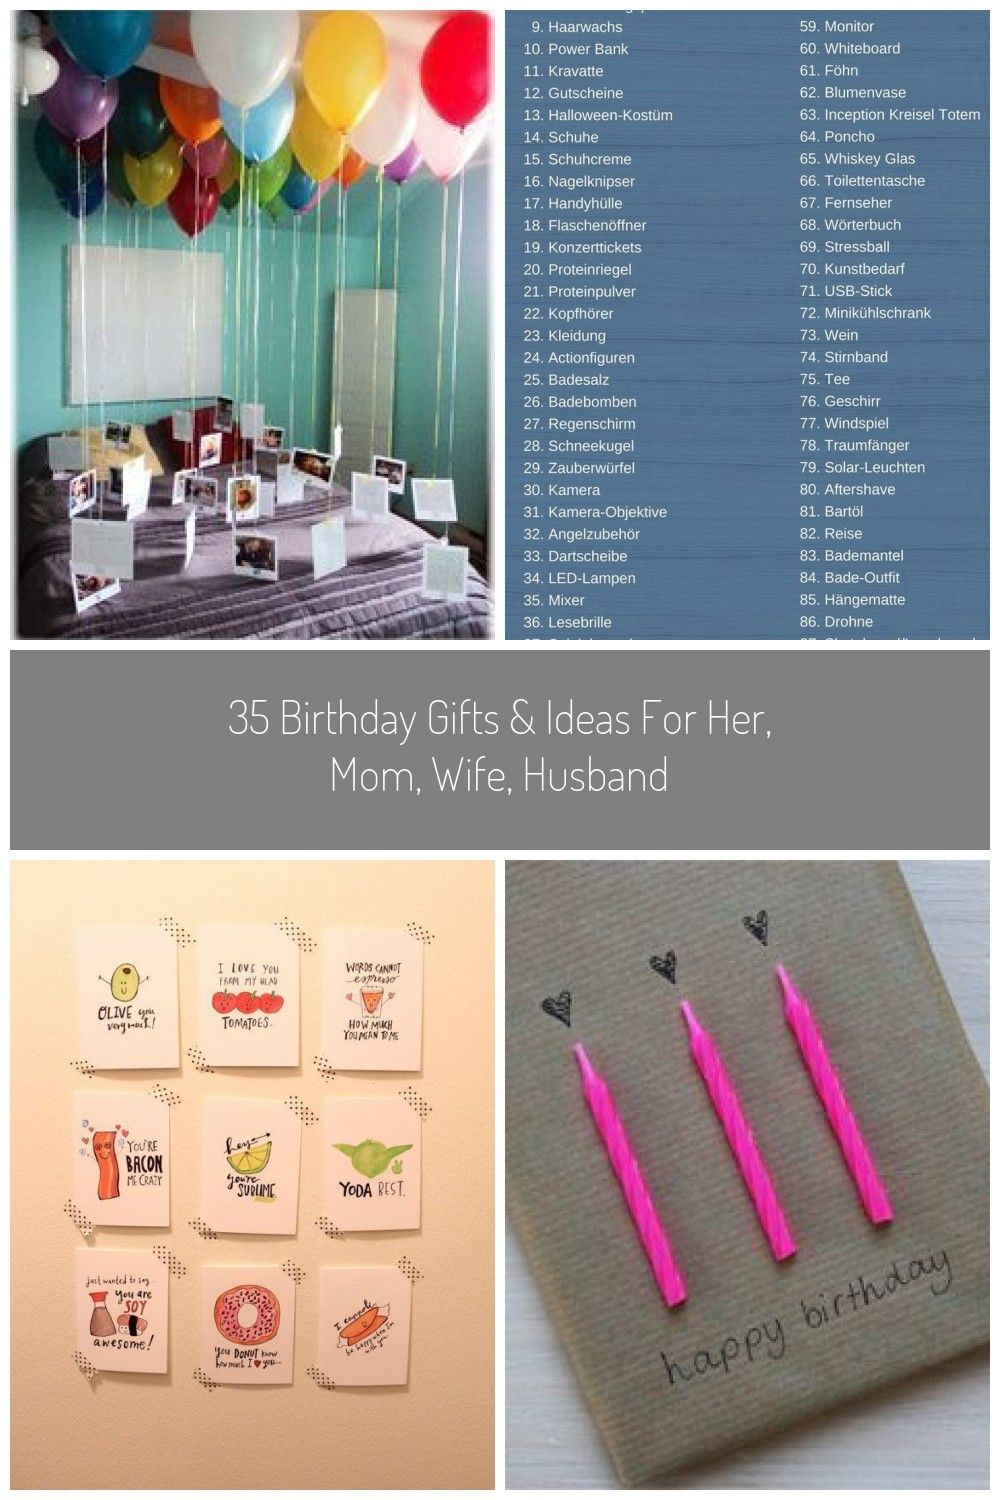 35 Birthday Gifts Ideas For Her Mom Wife Husband Sisterhi Guys I Was Asked Several Times To Compile A Gift List With A Few G In 2020 Stressball Blumen Vase Gutscheine